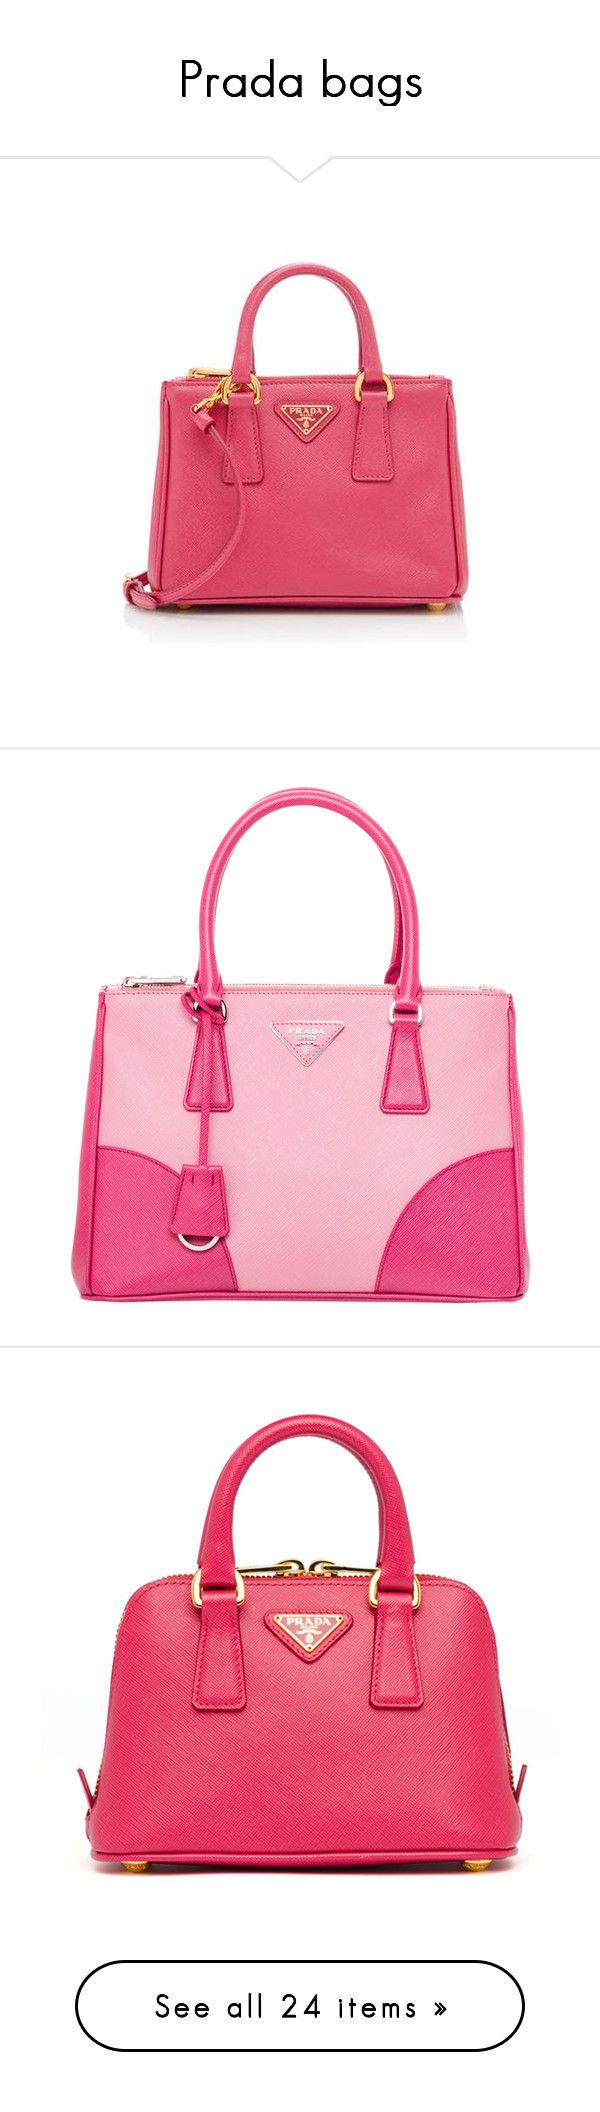 """Prada bags"" by missloveschic ❤ liked on Polyvore featuring bags, handbags, shoulder bags, pink, mini crossbody, red shoulder bag, prada purses, over the shoulder bag, crossbody handbags and tote bags"